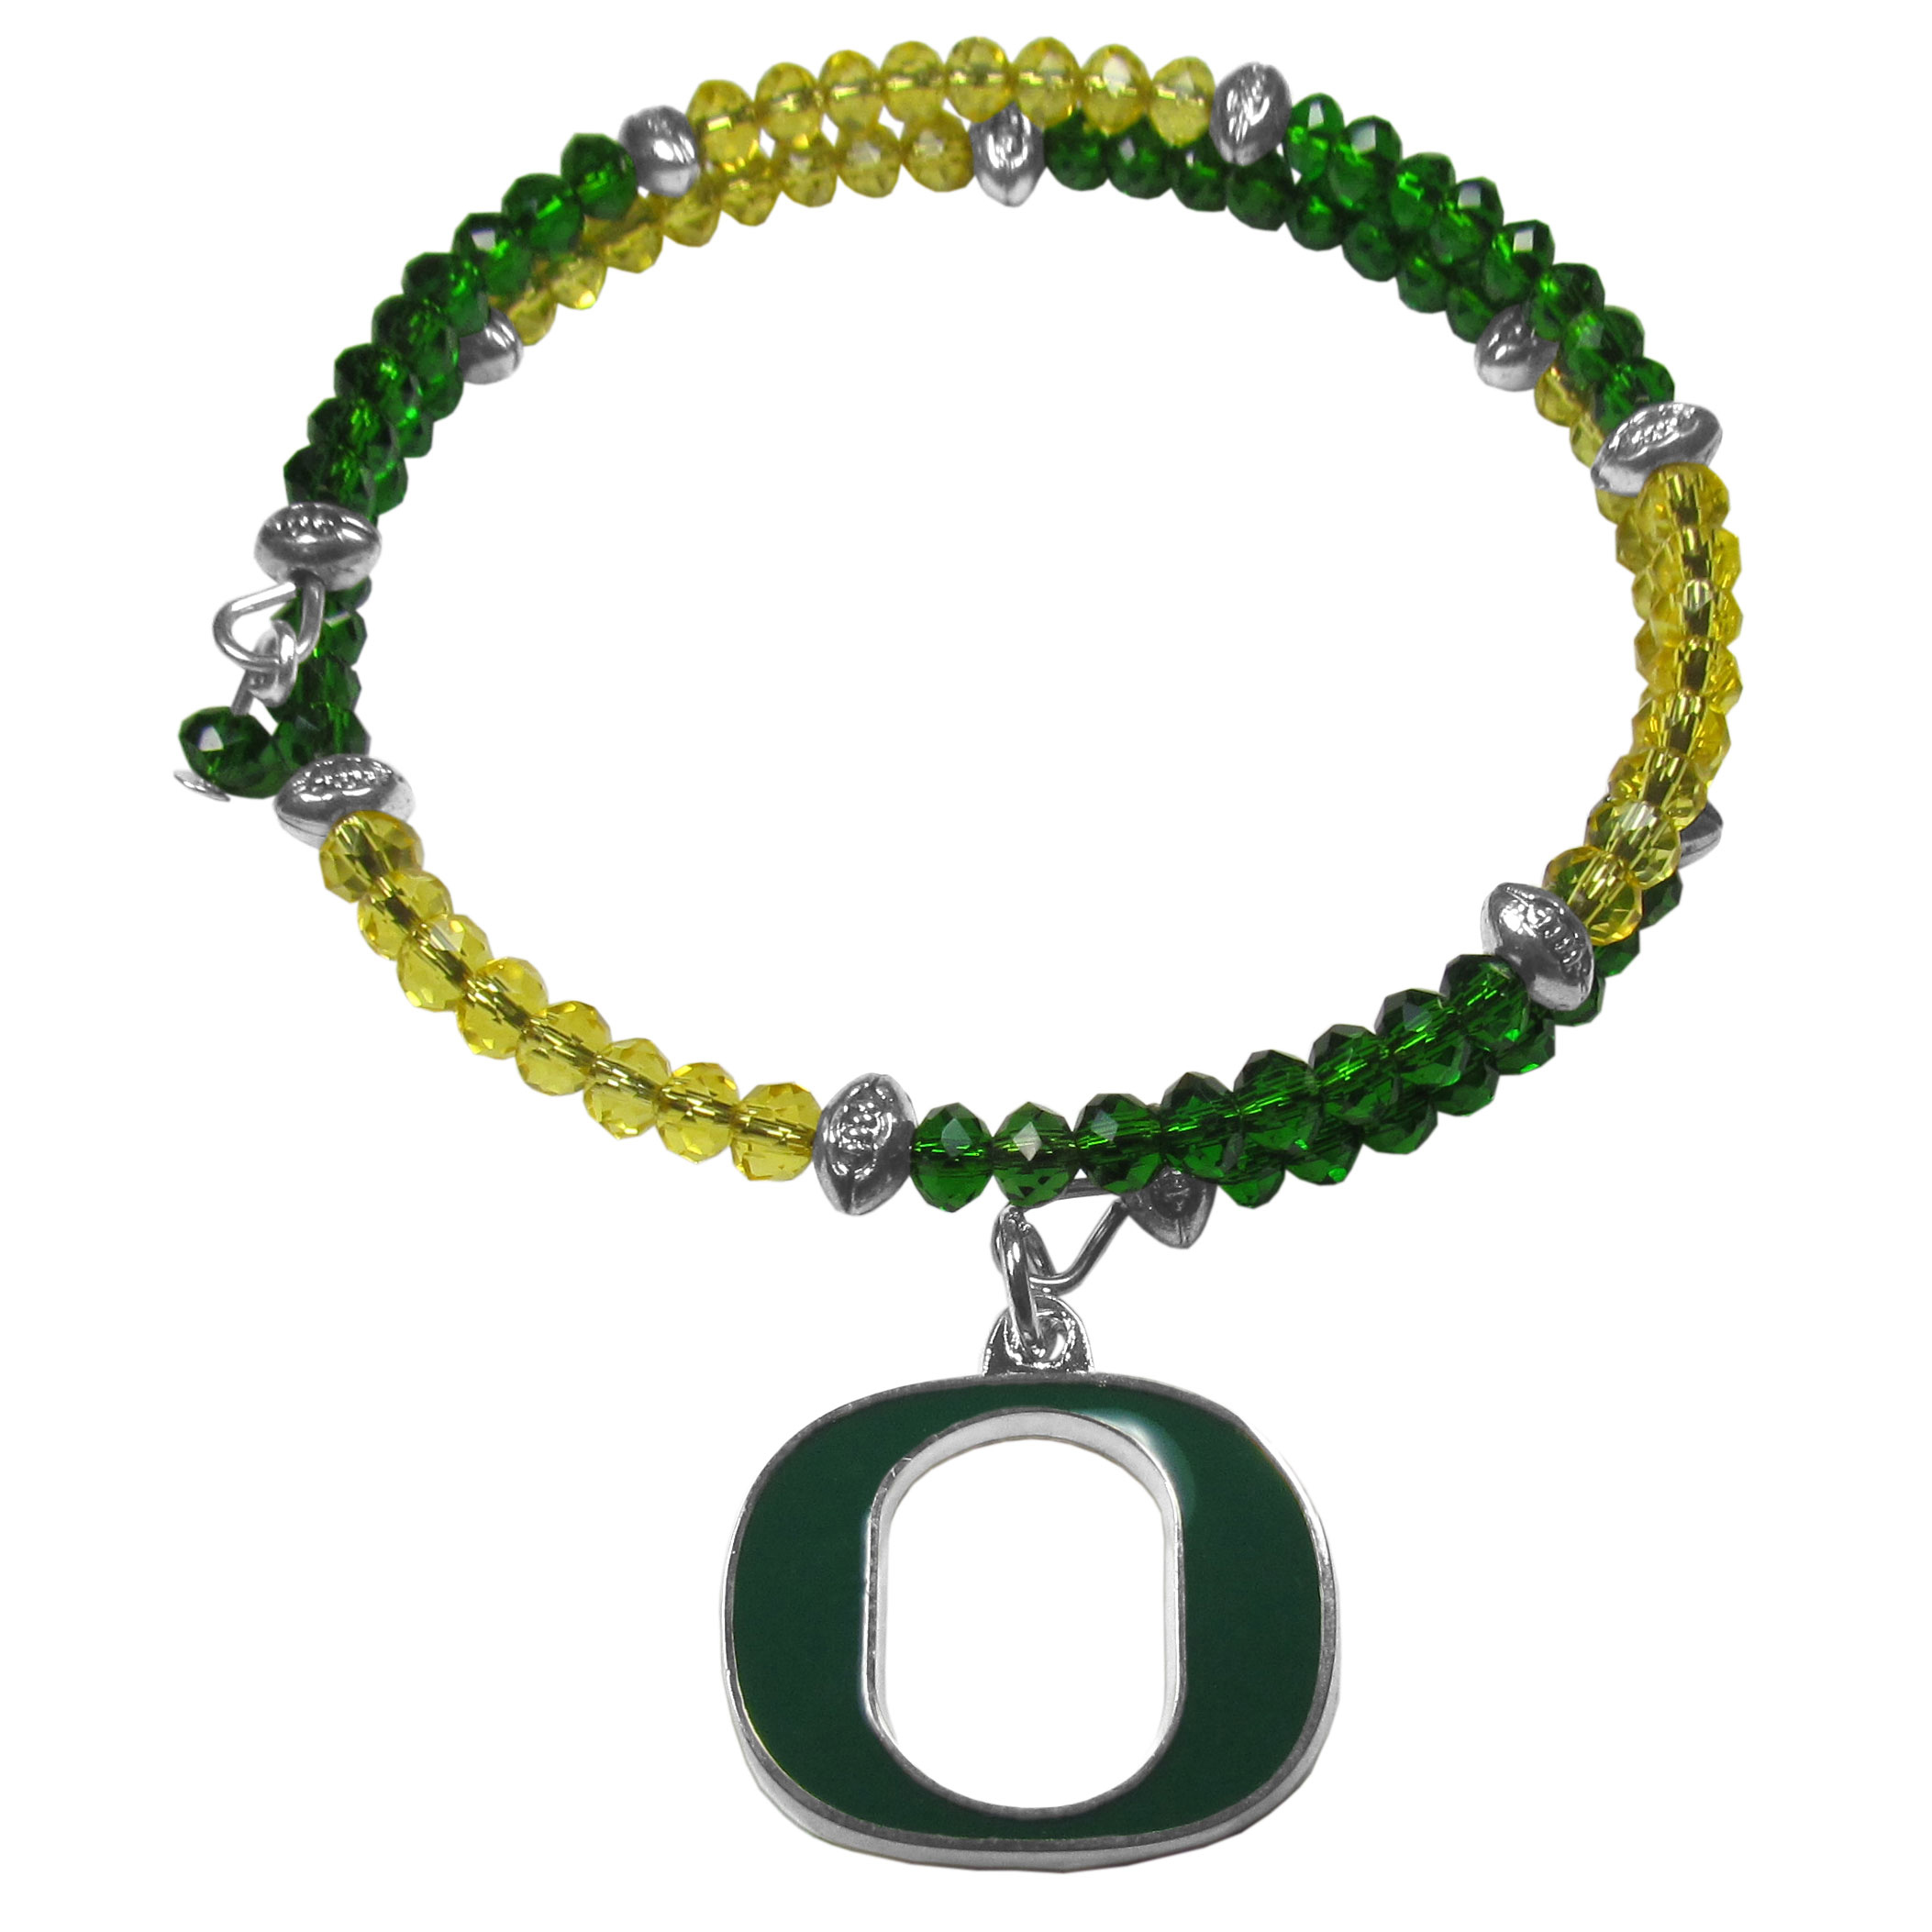 Oregon Ducks Crystal Memory Wire Bracelet - Our Oregon Ducks memory wire crystal bracelet is trendy way to show off your love of the game. The double wrap bracelet is completely covered in 4 mm crystals that are broken up with adorable football beads creating a designer look with a sporty twist. The bracelet features a fully cast, metal team charm that has expertly enameled team colors. This fashion jewelry piece is a must-have for the die-hard fan that chic look that can dress up any outfit.